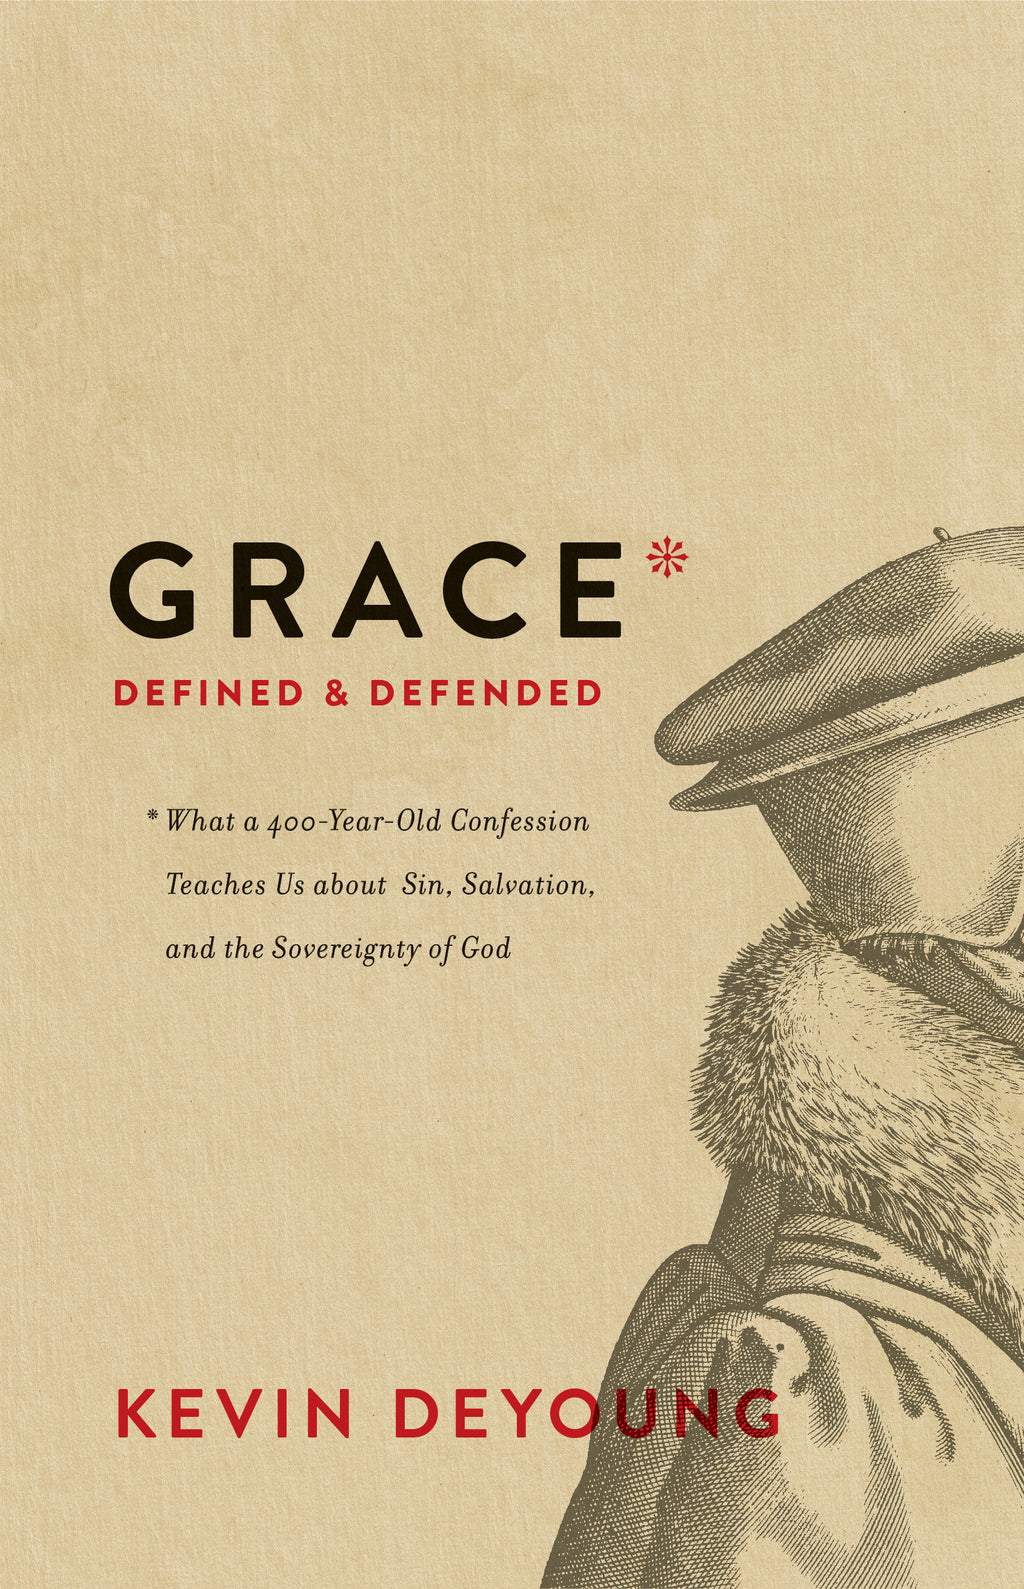 Grace Defined and Defended: What a 400-Year-Old Confession Teaches Us about Sin, Salvation, and the Sovereignty of God Kevin DeYoung cover image